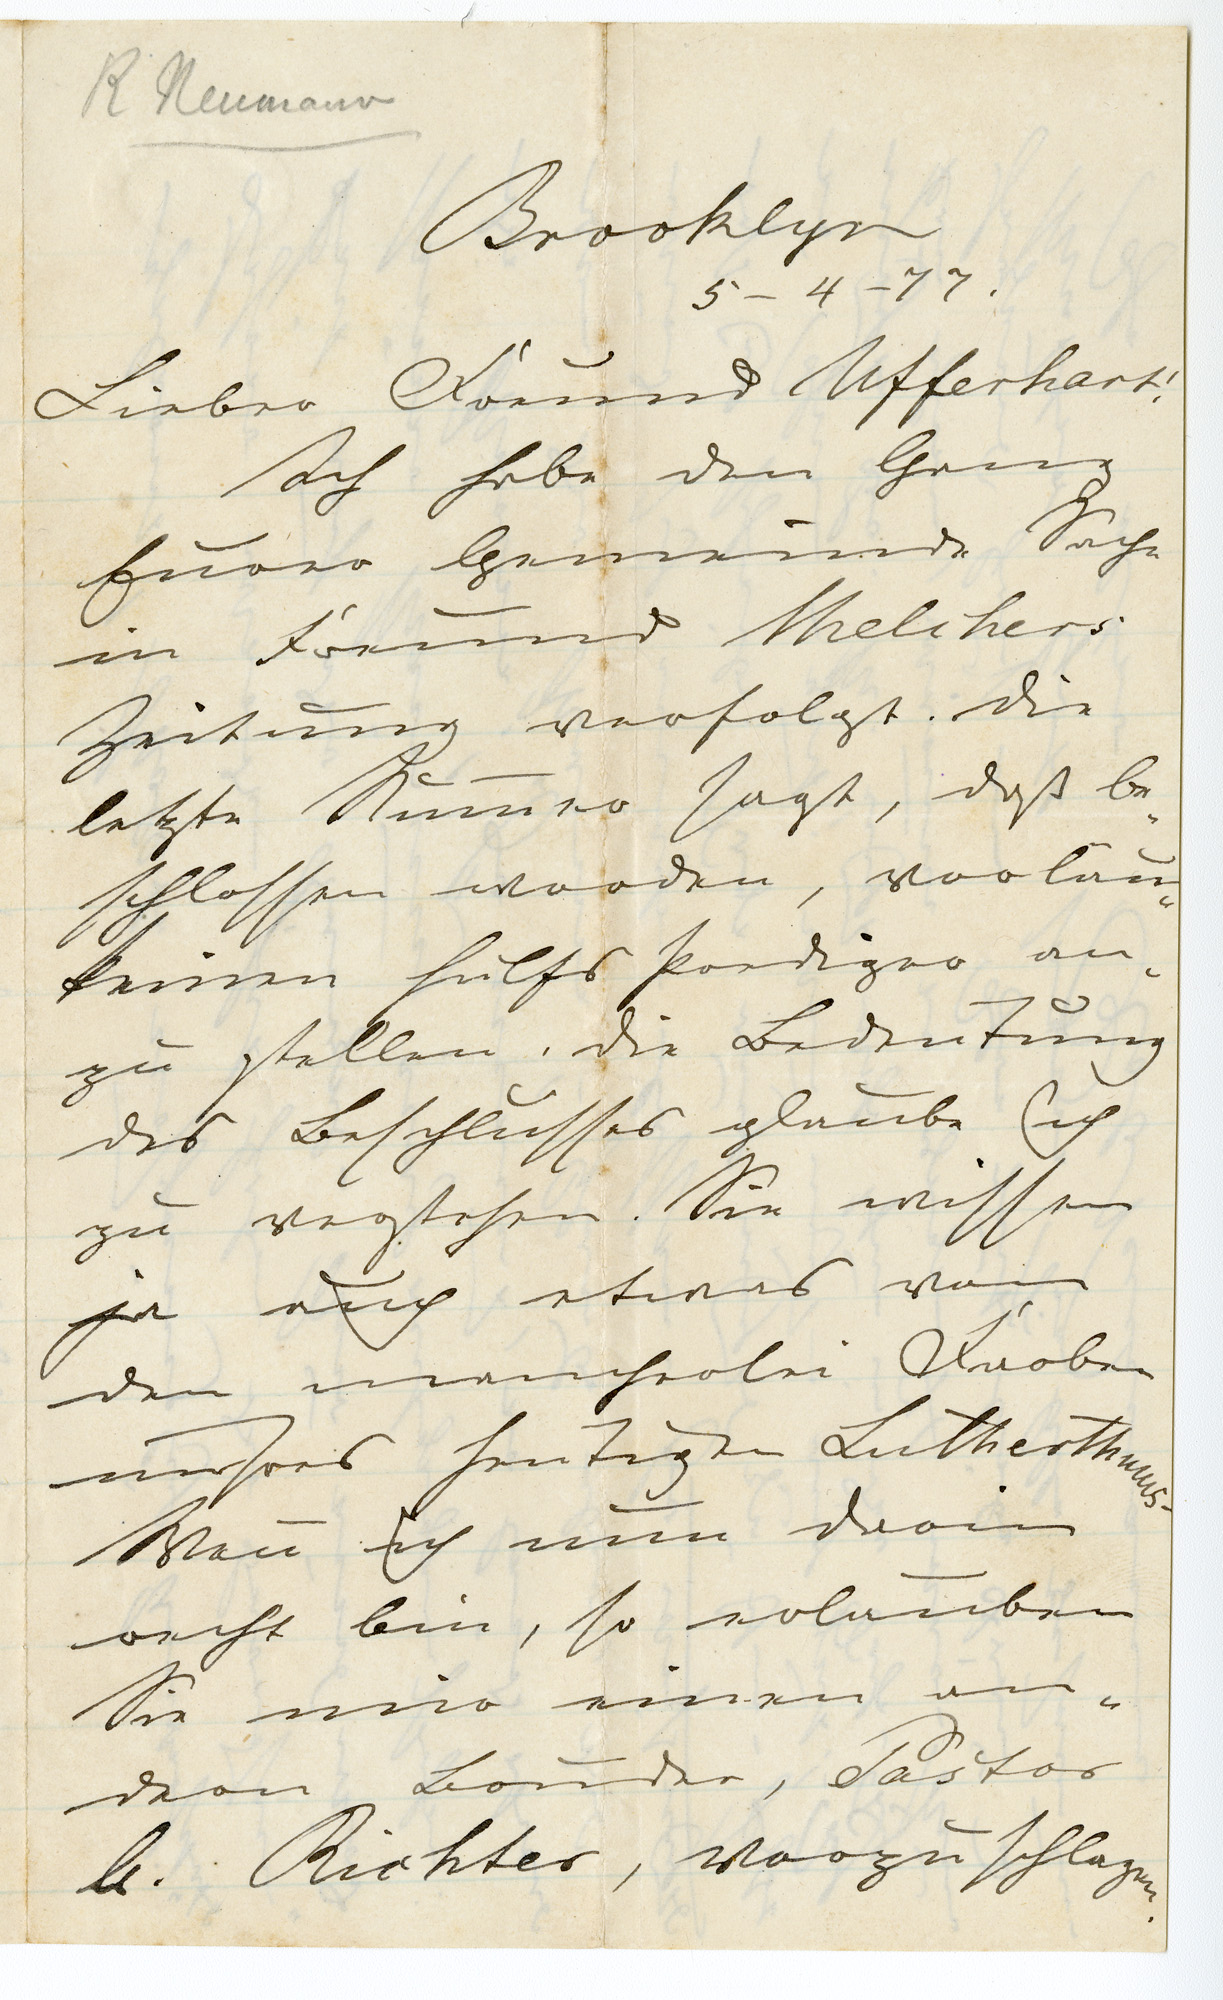 Letter from Rob Neumann to William Ufferhardt. May 4, 1877